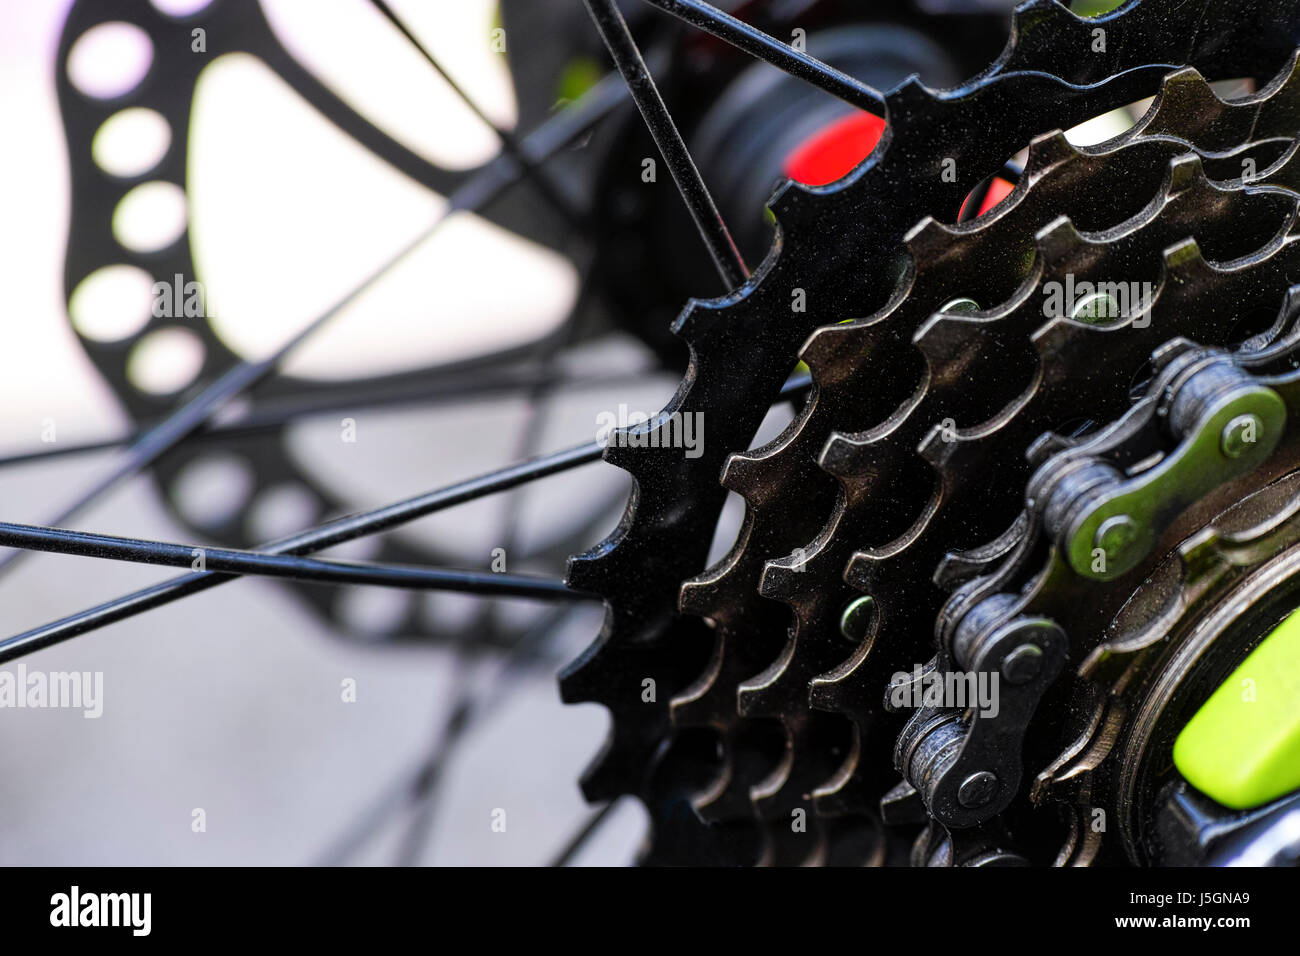 Gear cassette on bicycle. Close-up. - Stock Image